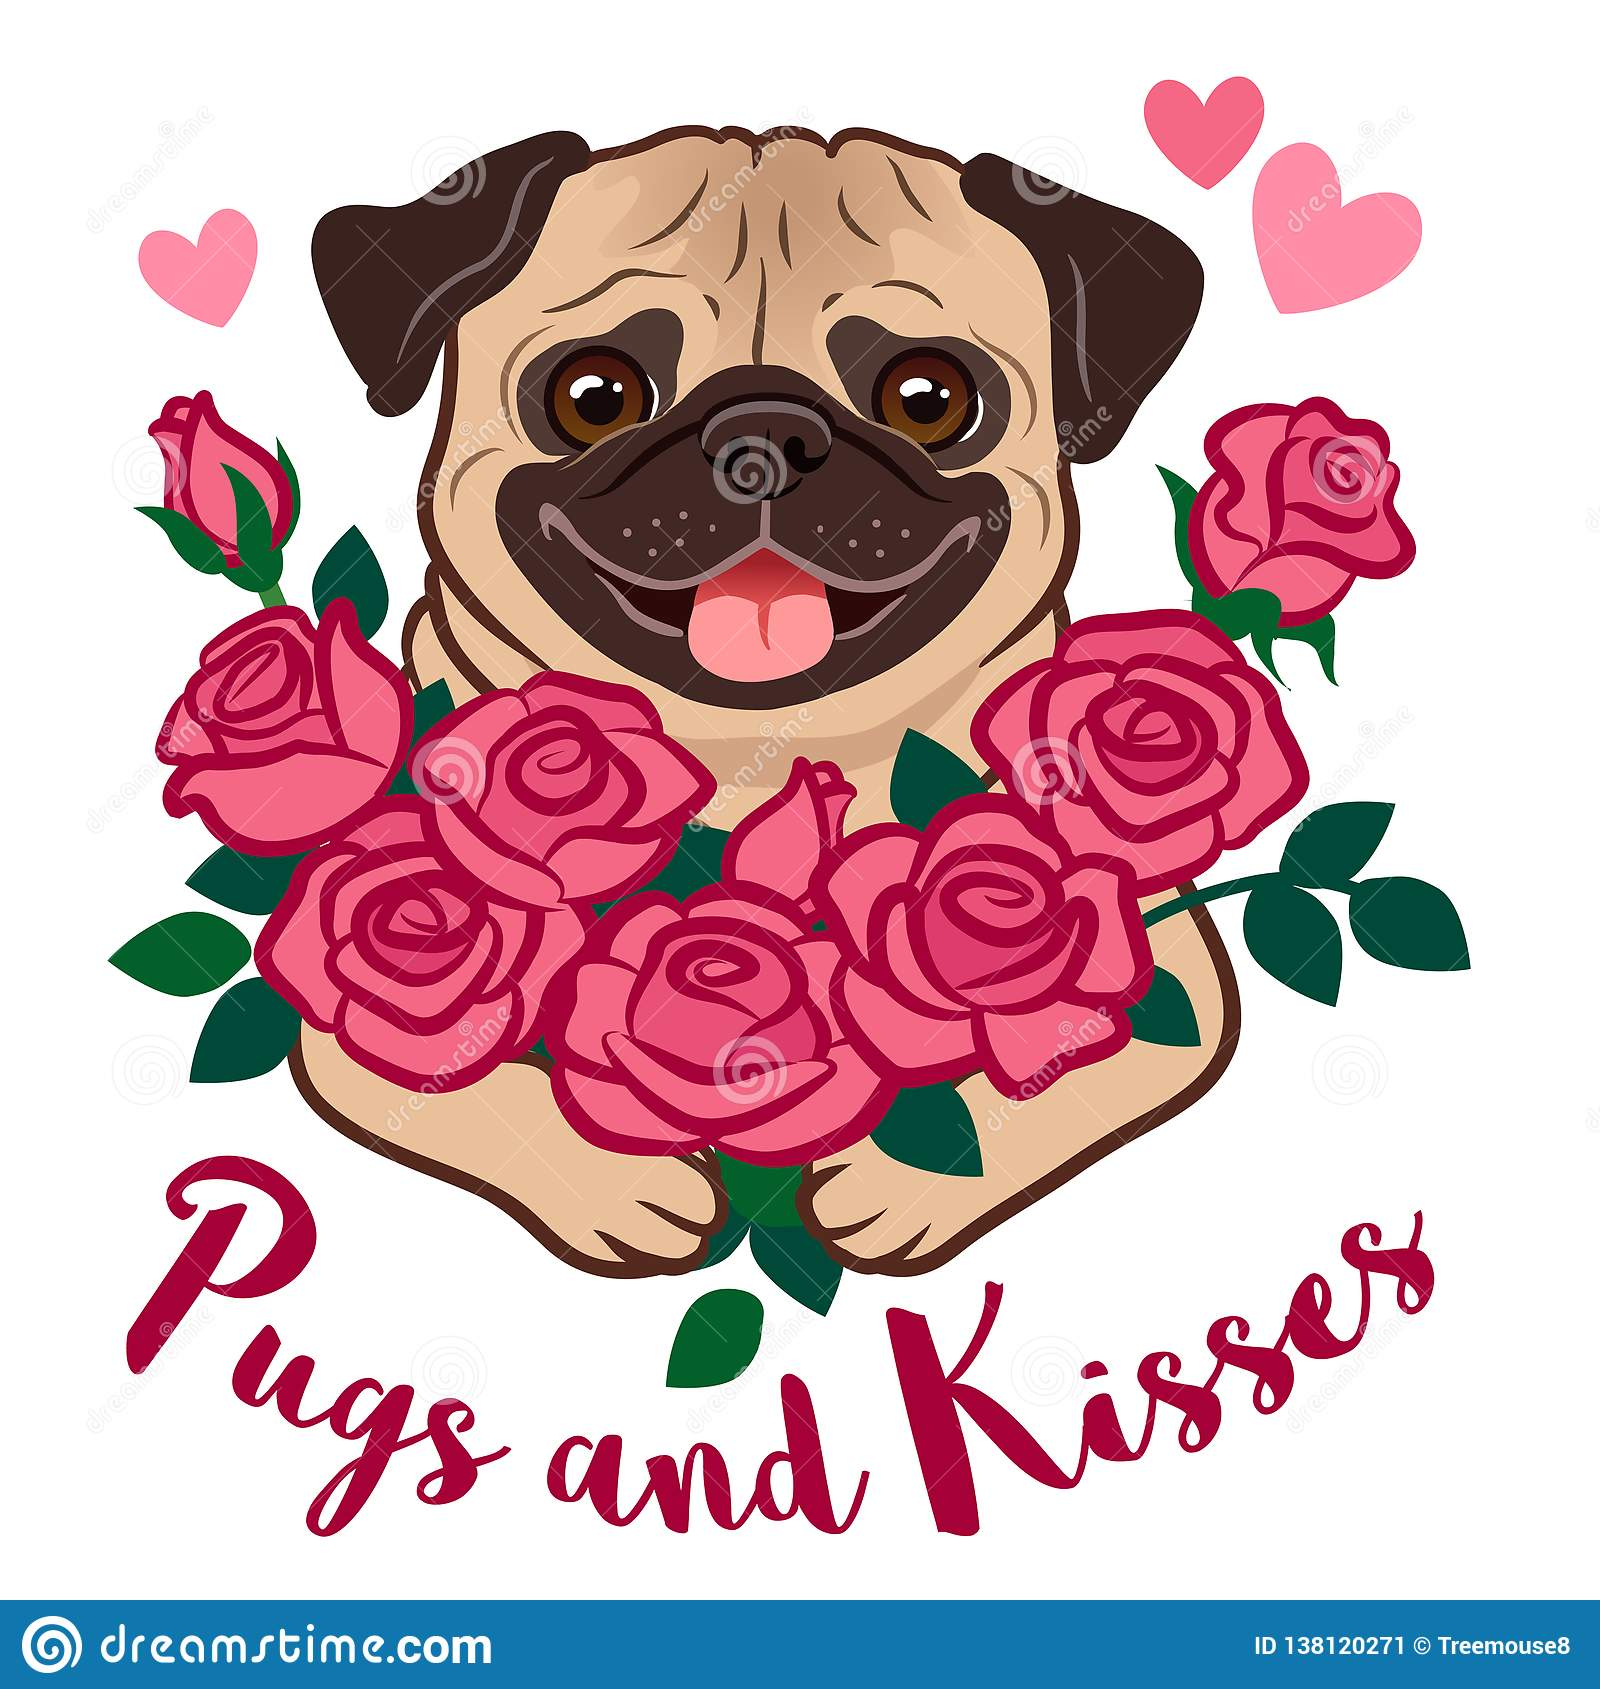 3079ff2c08c Funny Pug Puppy Dog Holding A Bunch Of Pink Roses